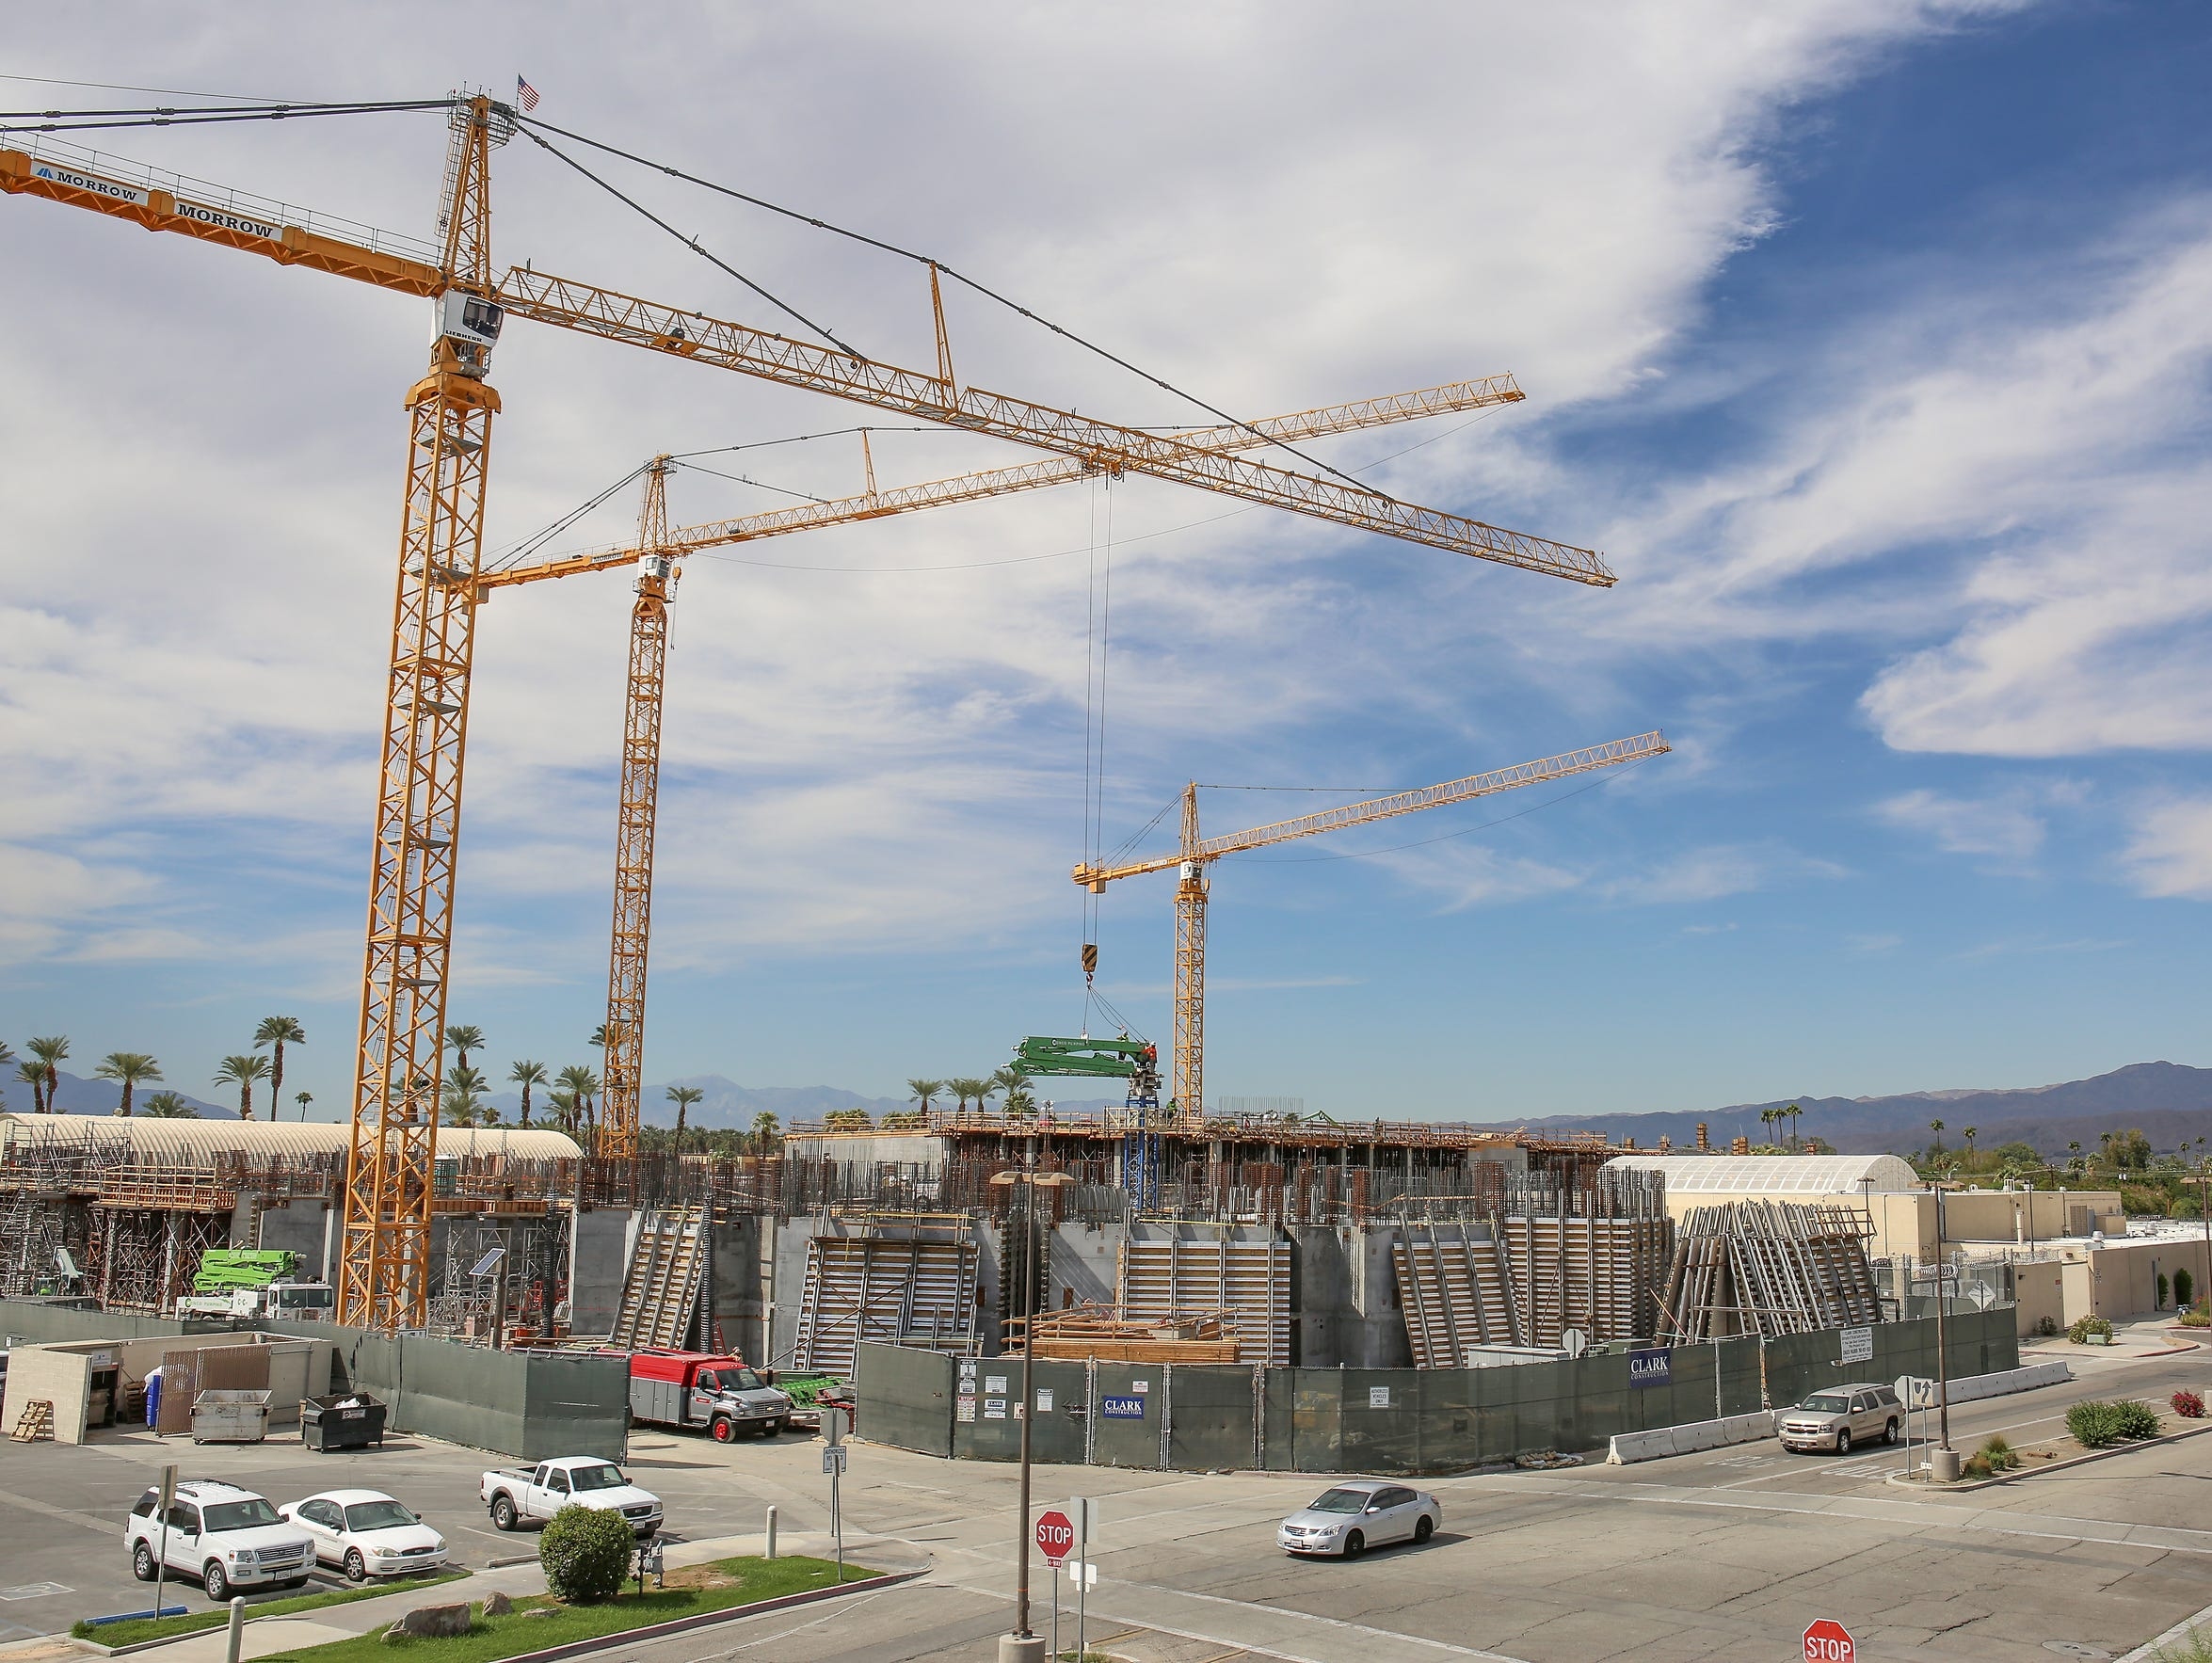 The new Indio jail, seen here under construction on